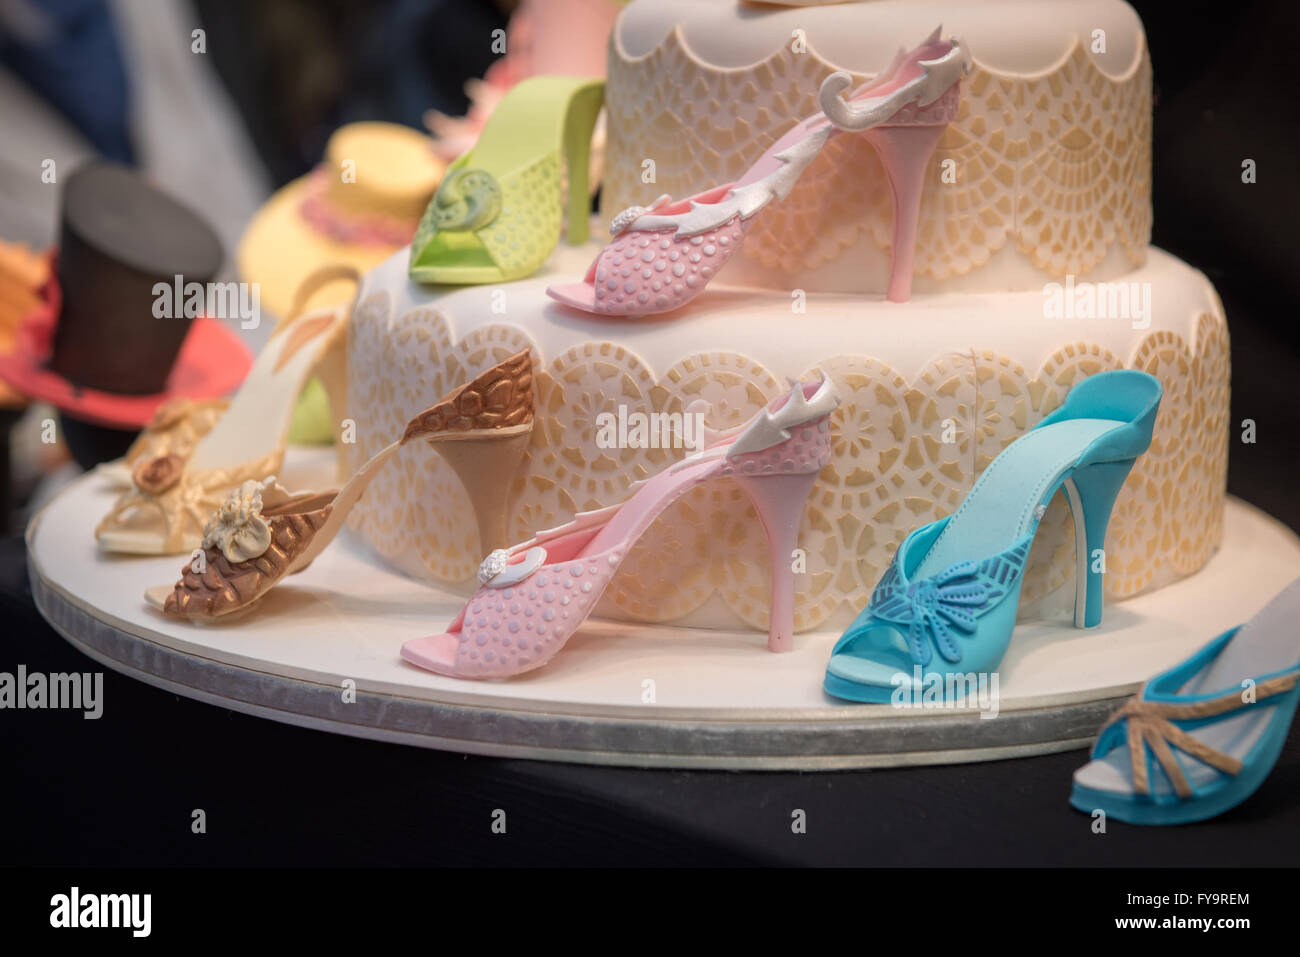 Phenomenal Edible High Heels Shoes Birthday Cake Decor At Cake International Birthday Cards Printable Opercafe Filternl